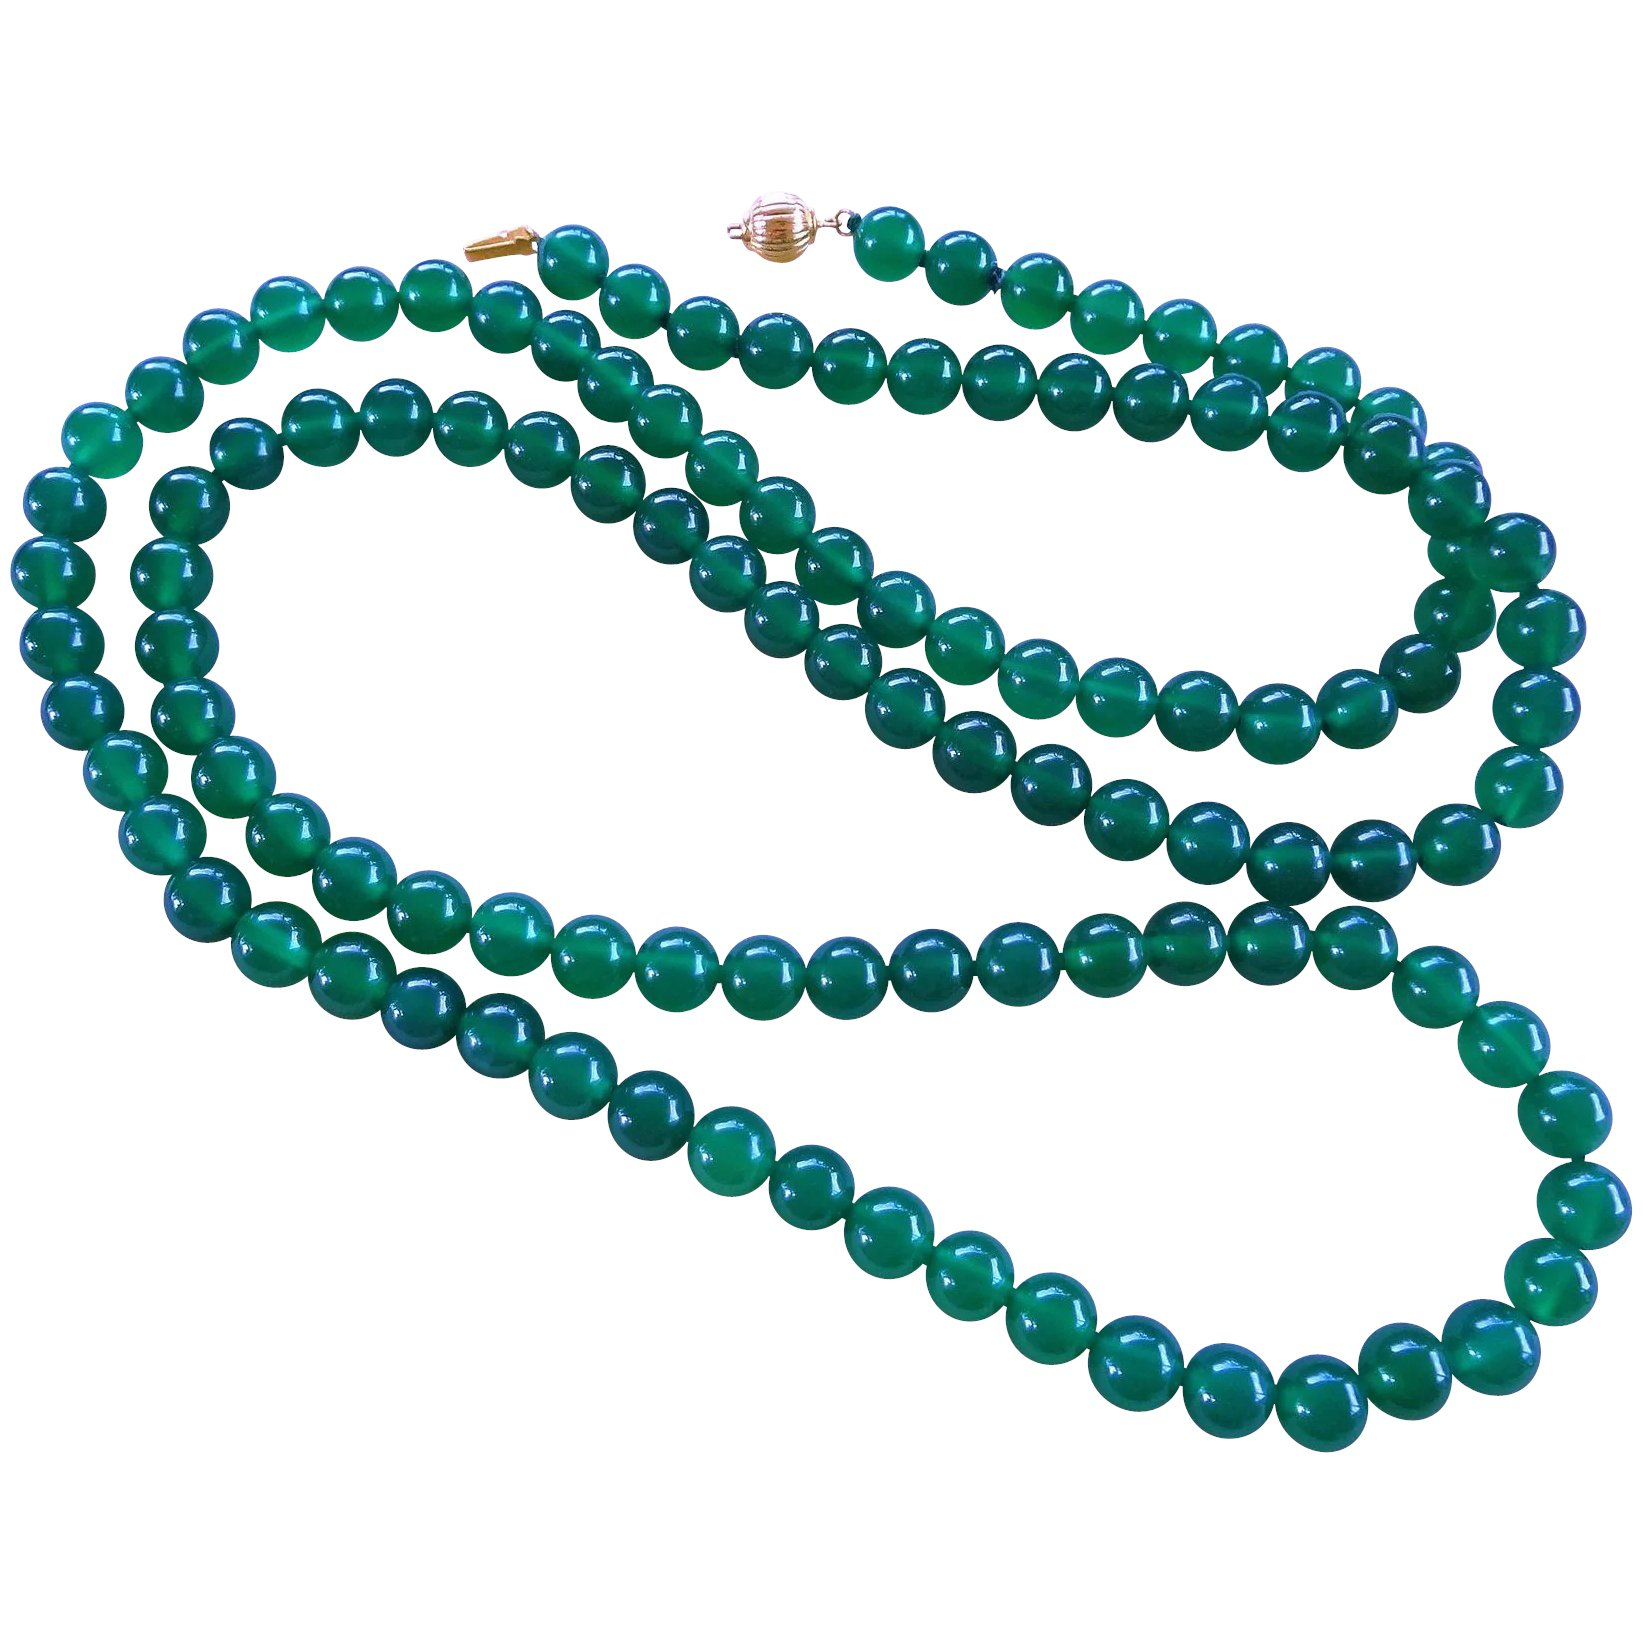 necklace chrysoprase collier accueil en amours corfu internationales